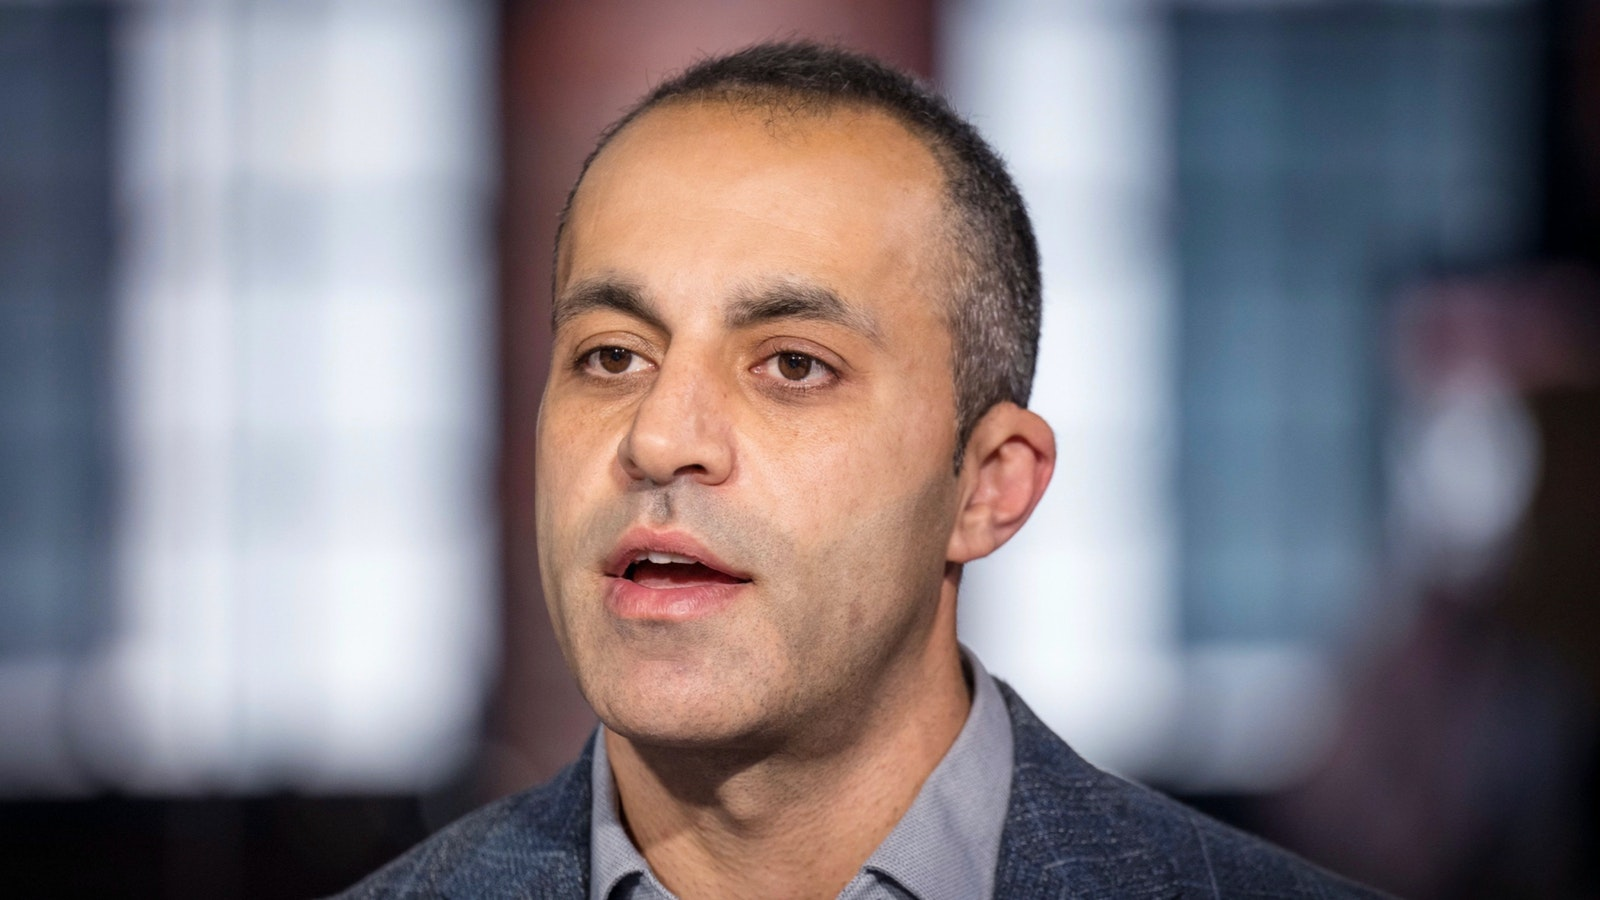 Ali Ghodsi, co-founder and chief executive officer of Databricks. Photo by Bloomberg